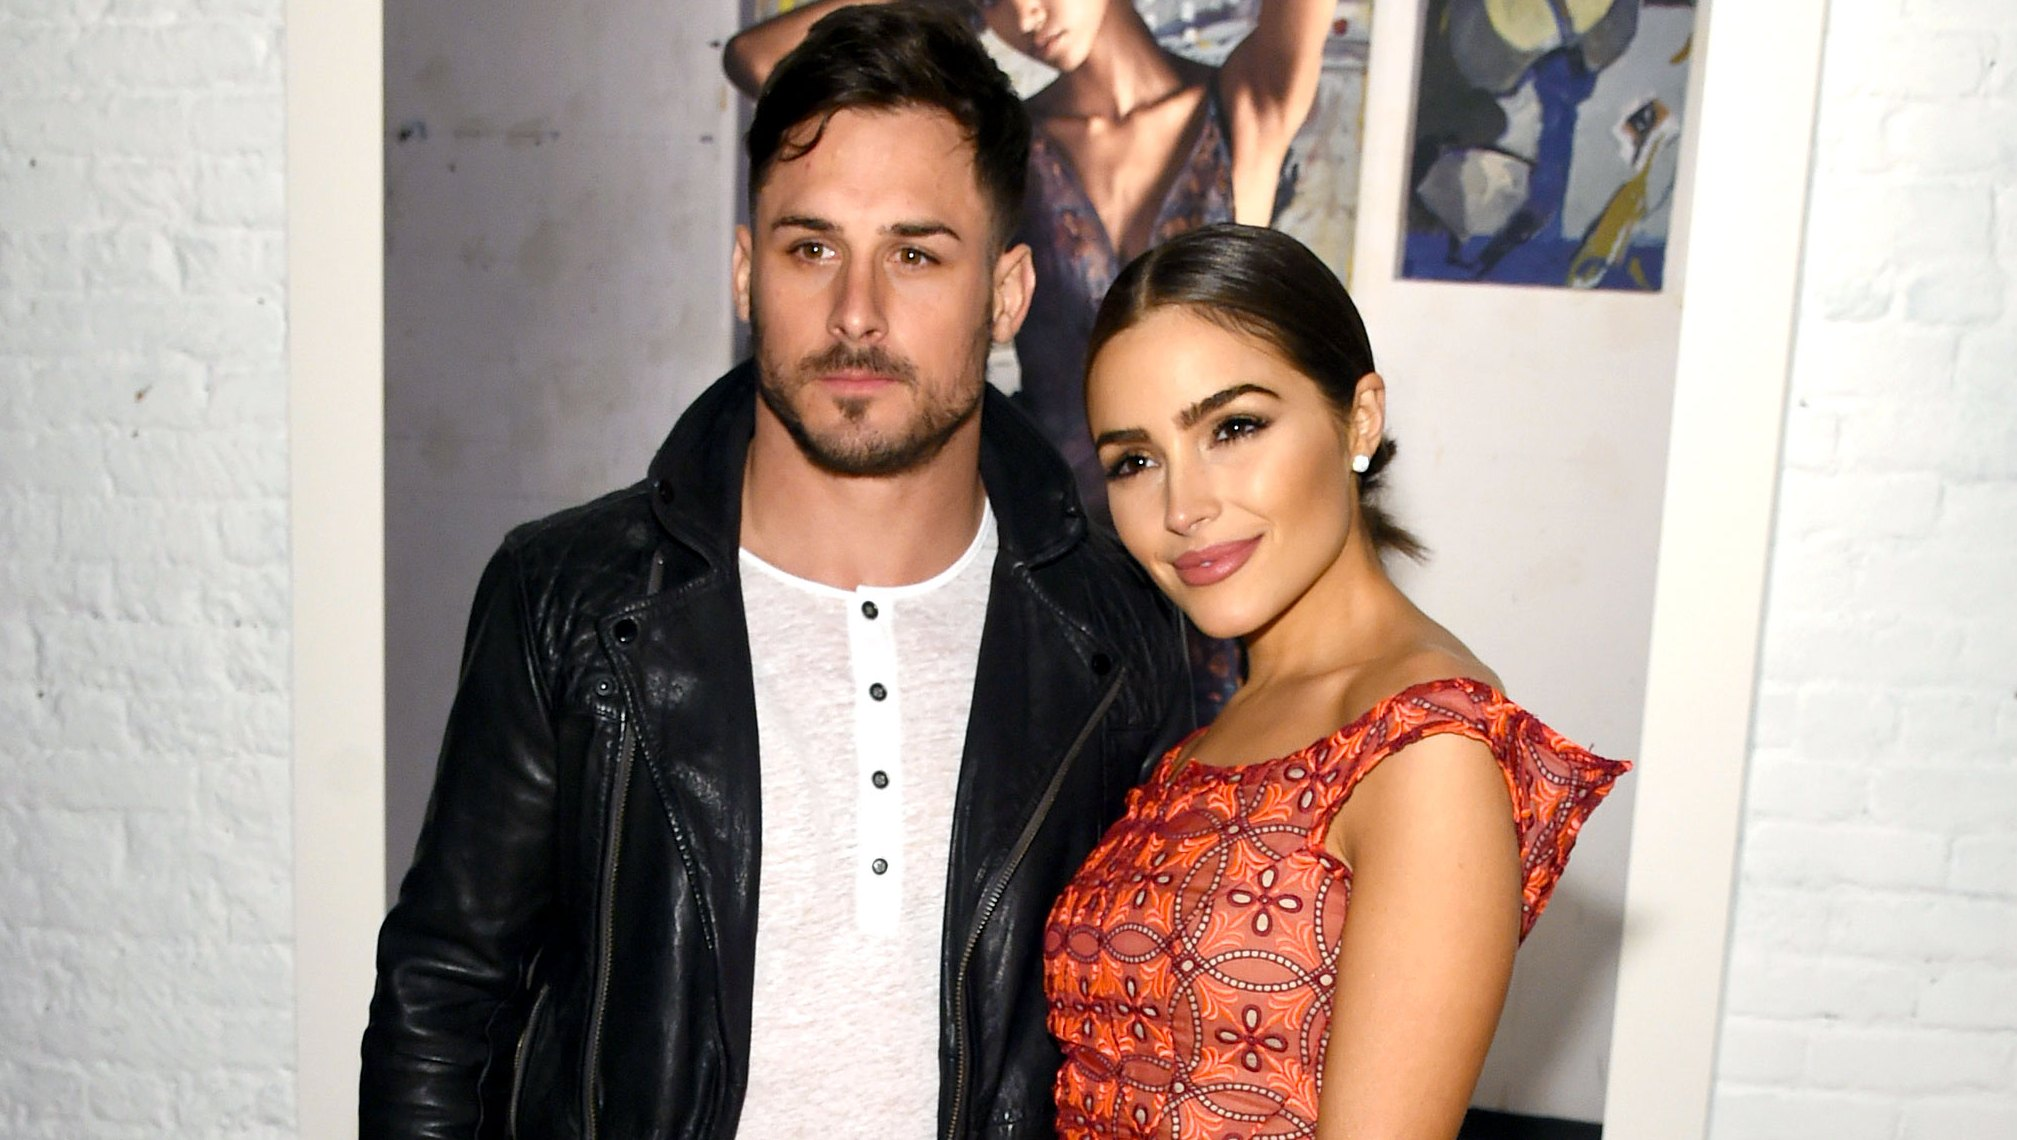 Danny Amendola Takes Blame After Slamming Ex Olivia Culpo